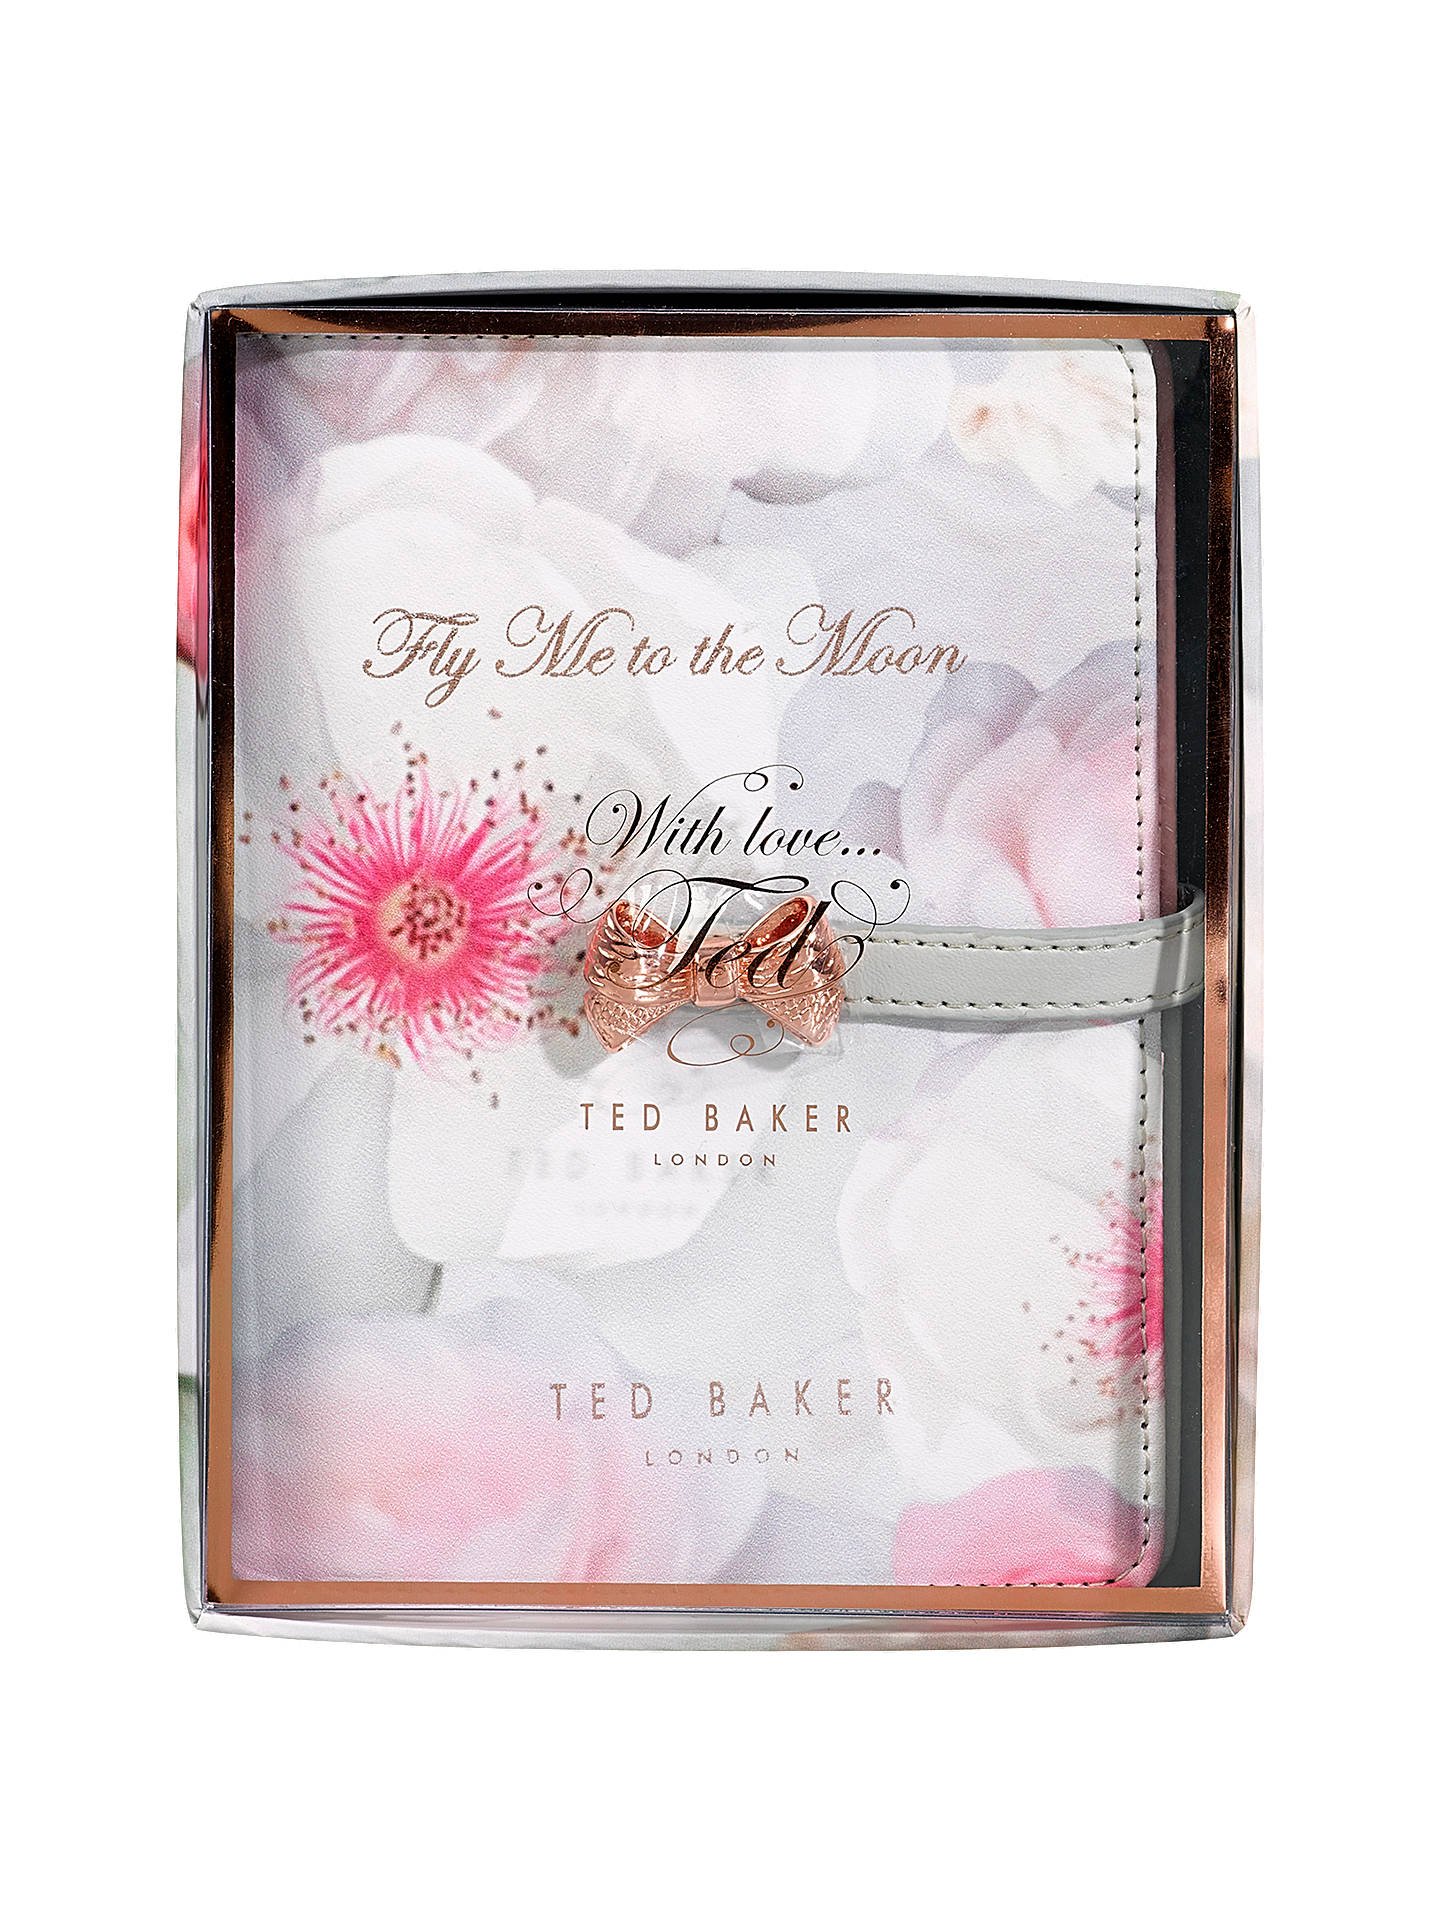 Ted Baker Travel Document Holder Chelsea Border At John